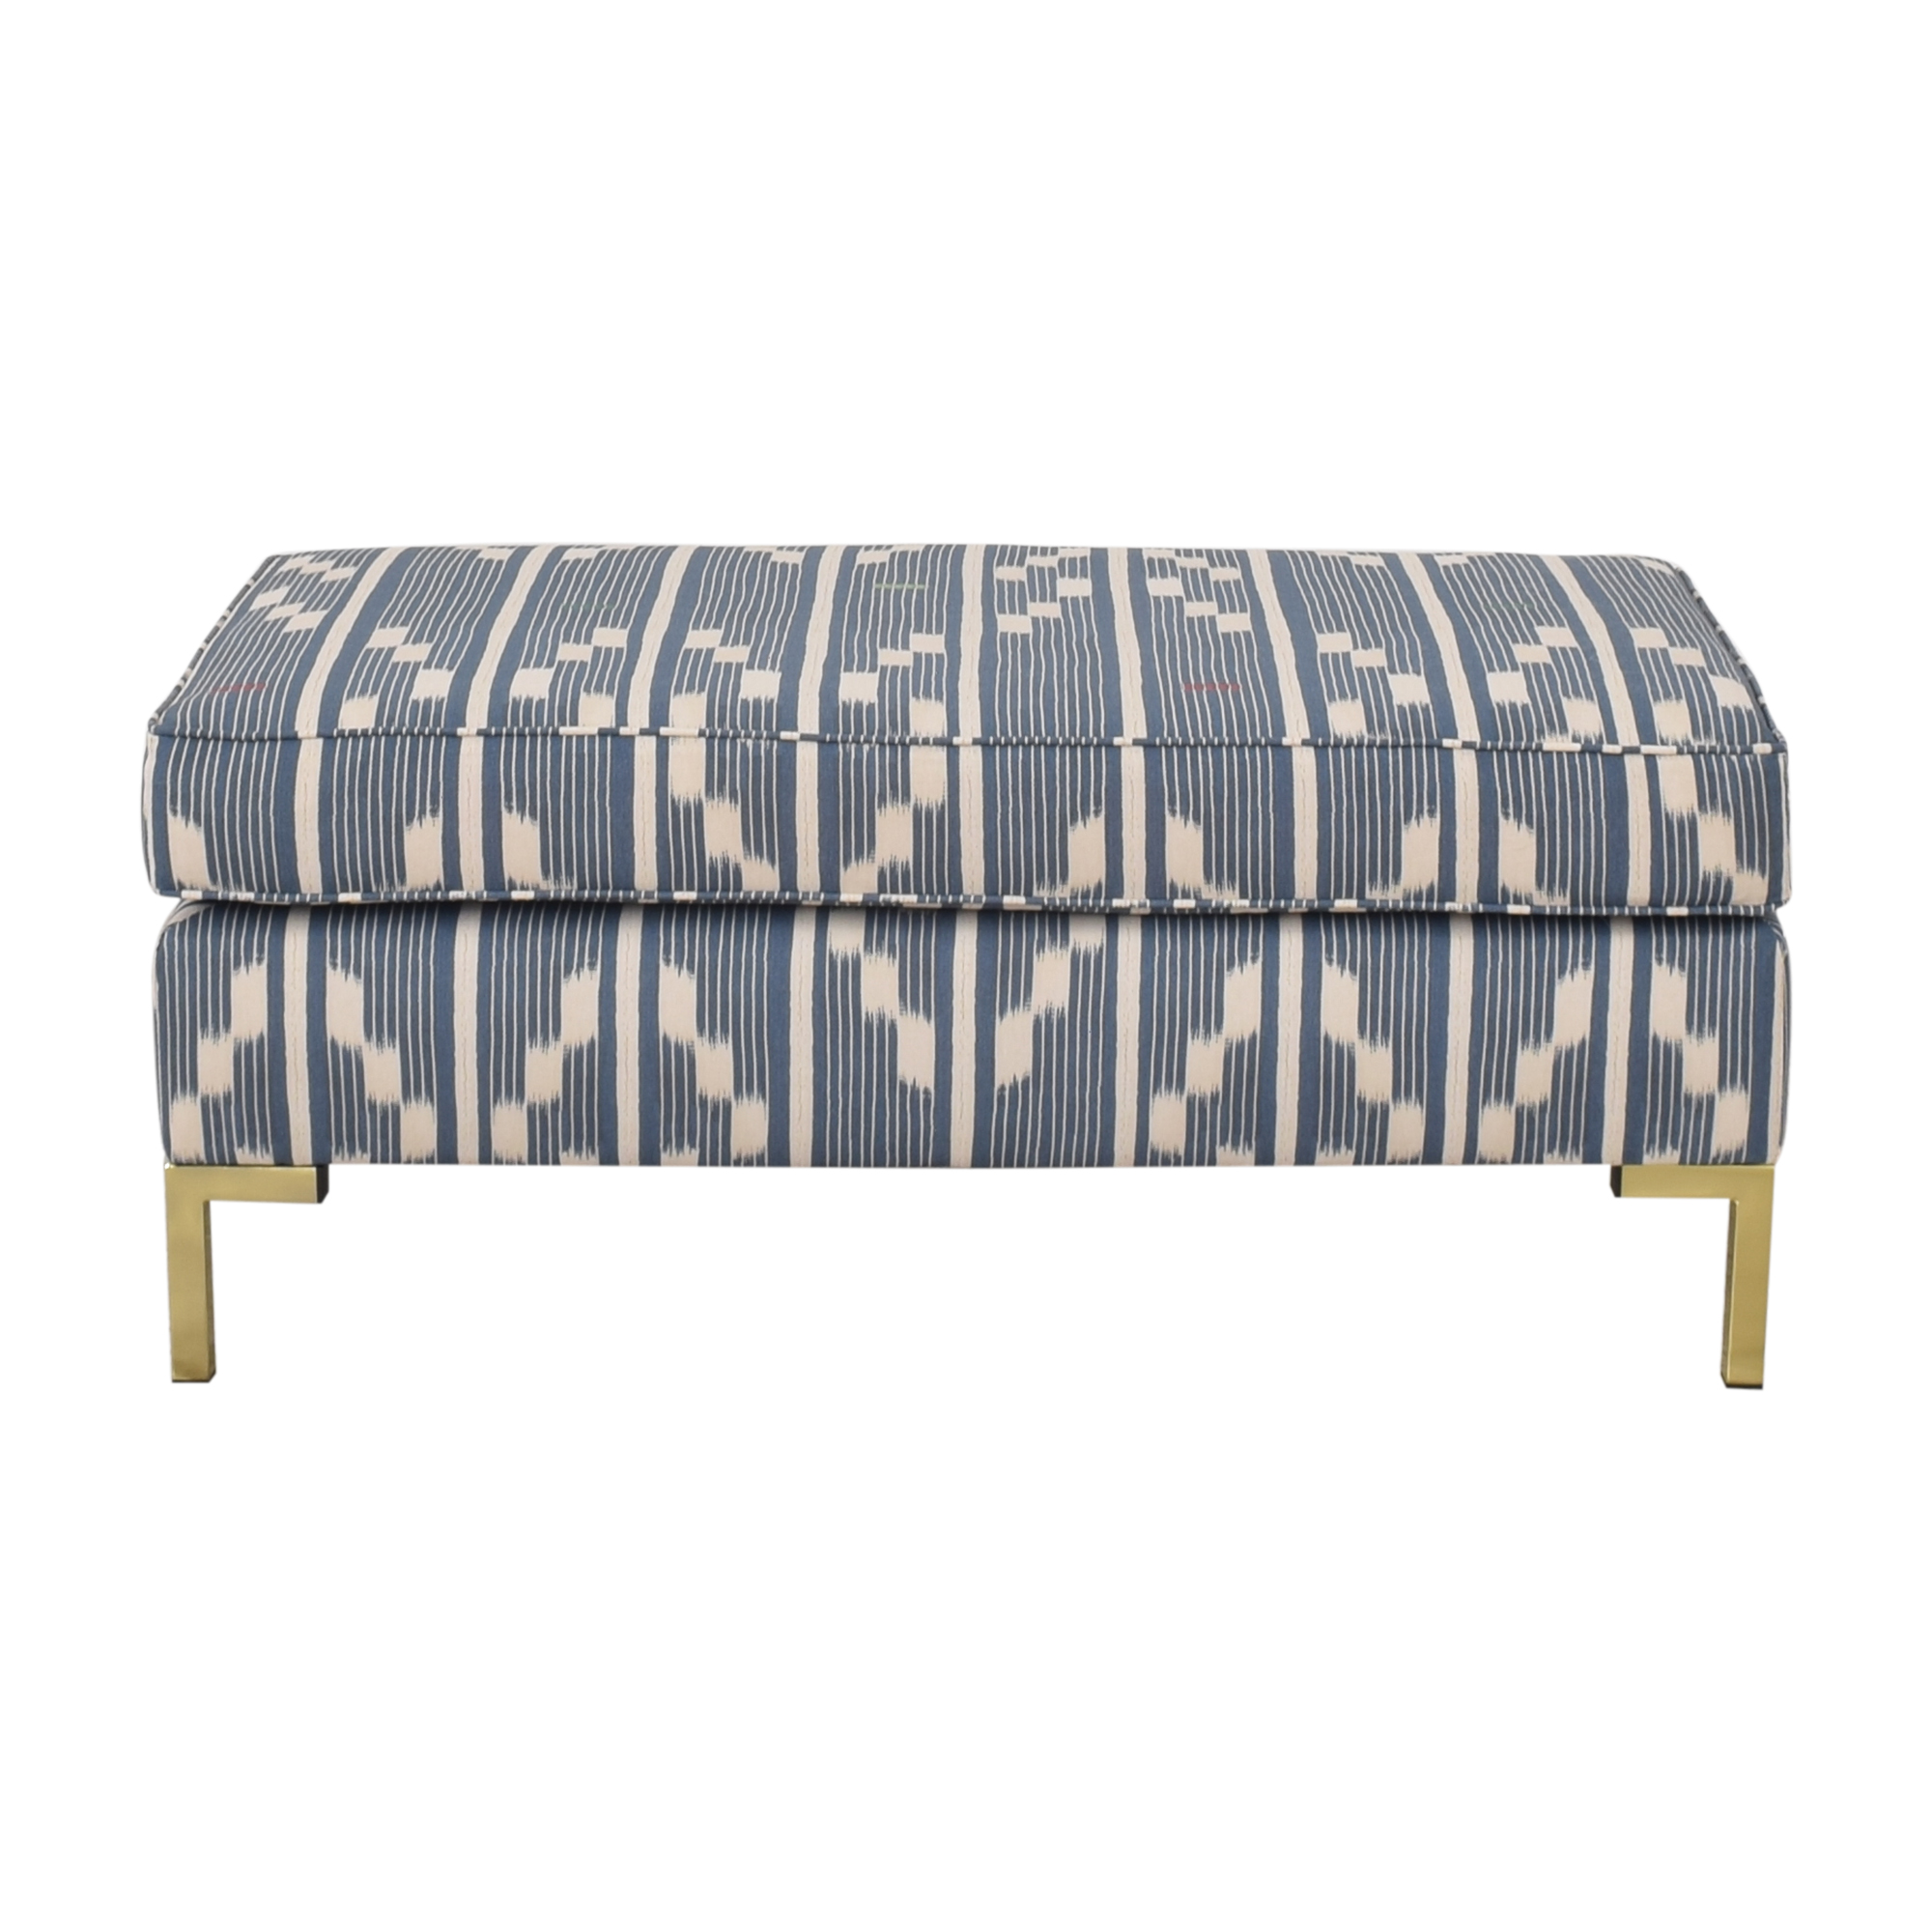 buy The Inside Modern Bench in Linea Ikat The Inside Chairs